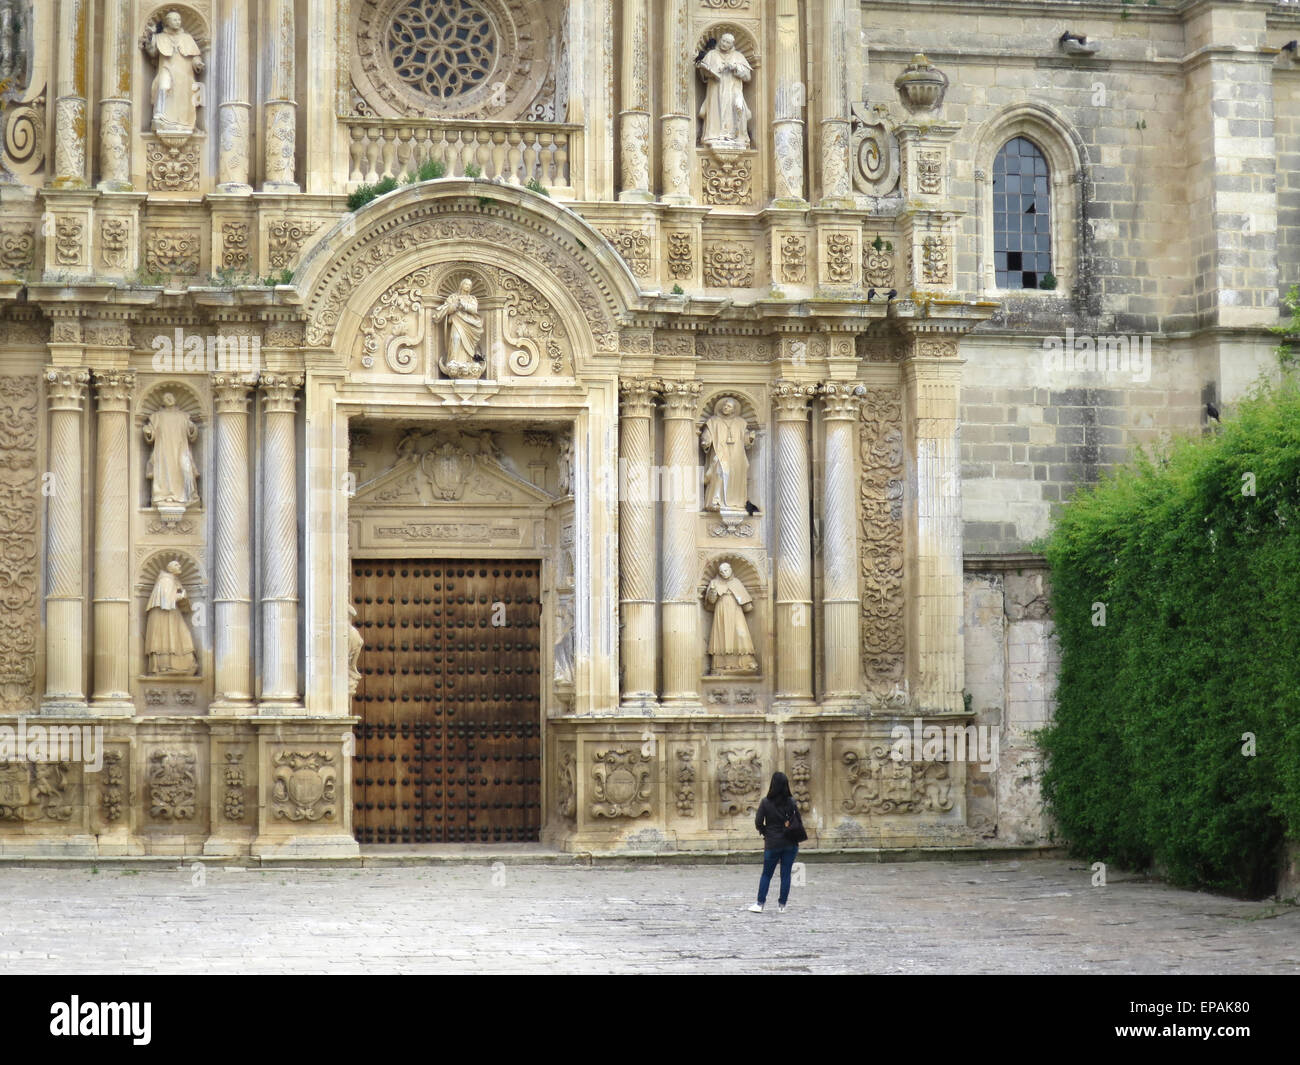 Charterhouse of Jerez de la Frontera, also called the Cartuja de Santa María de la Defensión - Stock Image